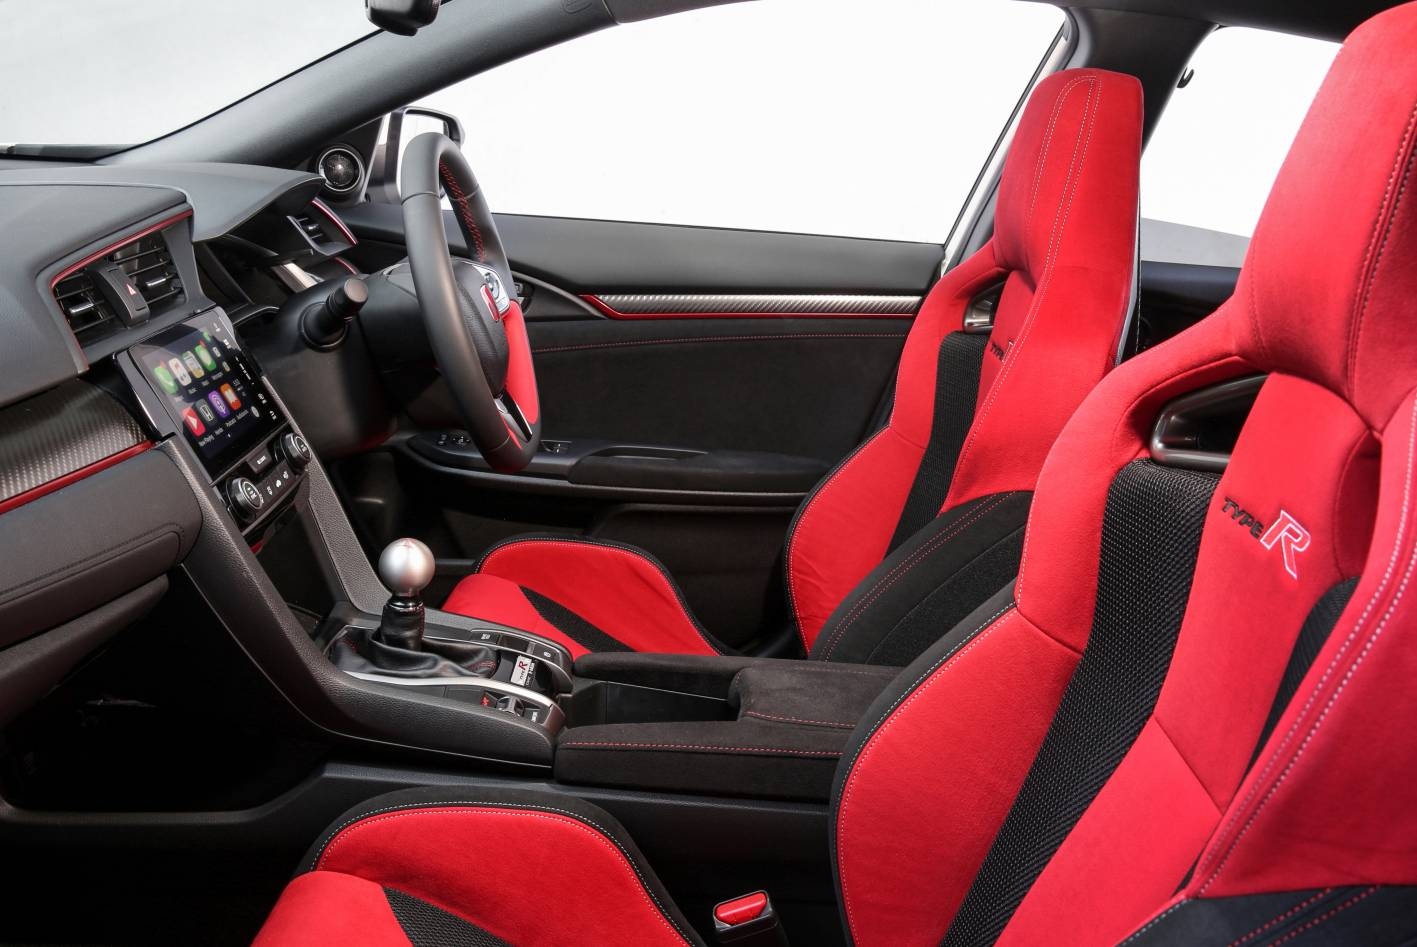 2018 honda civic type r technical overview. Black Bedroom Furniture Sets. Home Design Ideas